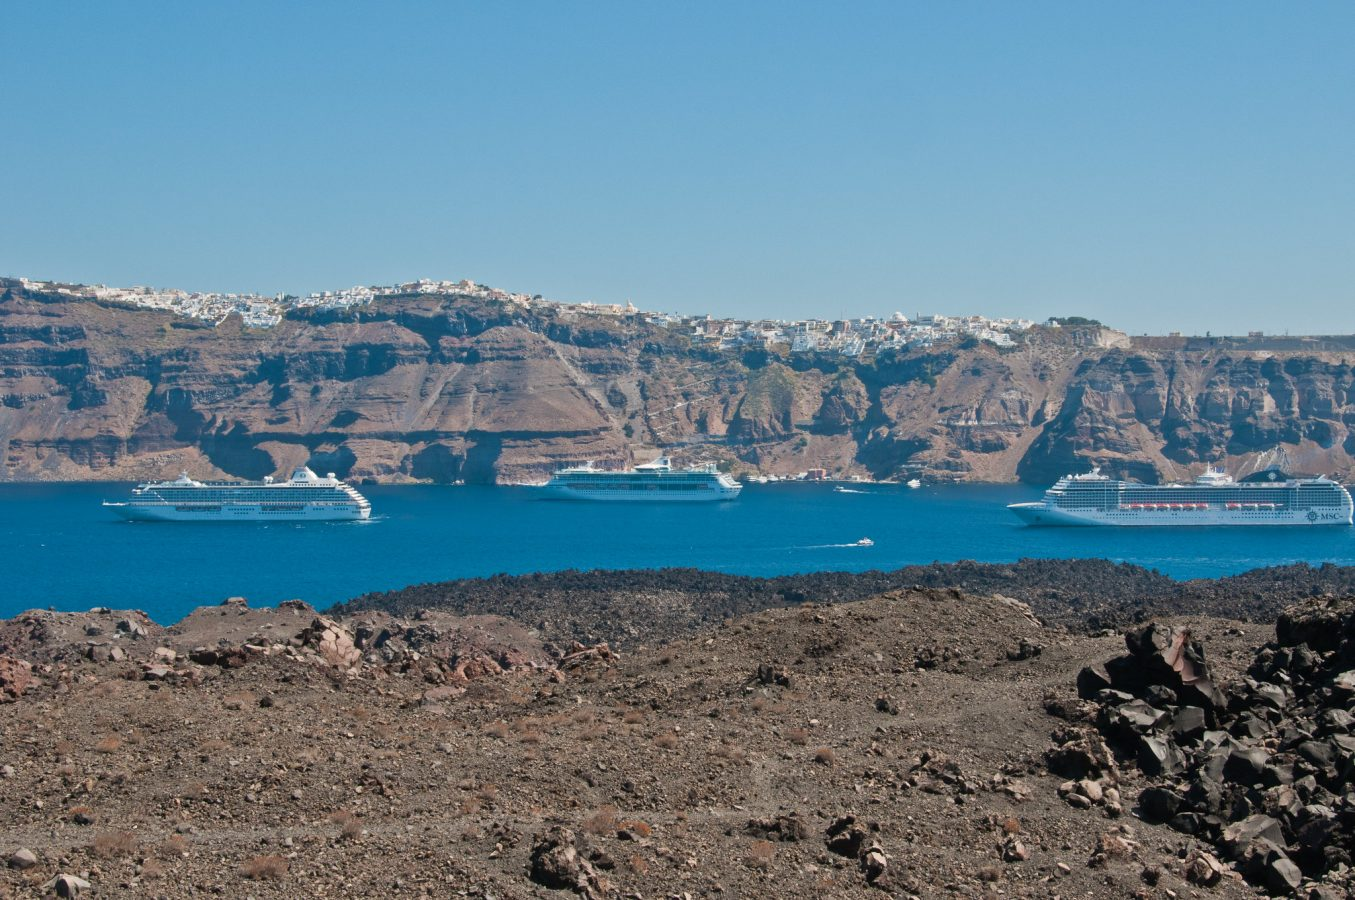 Santorini cruise ships in the caldera